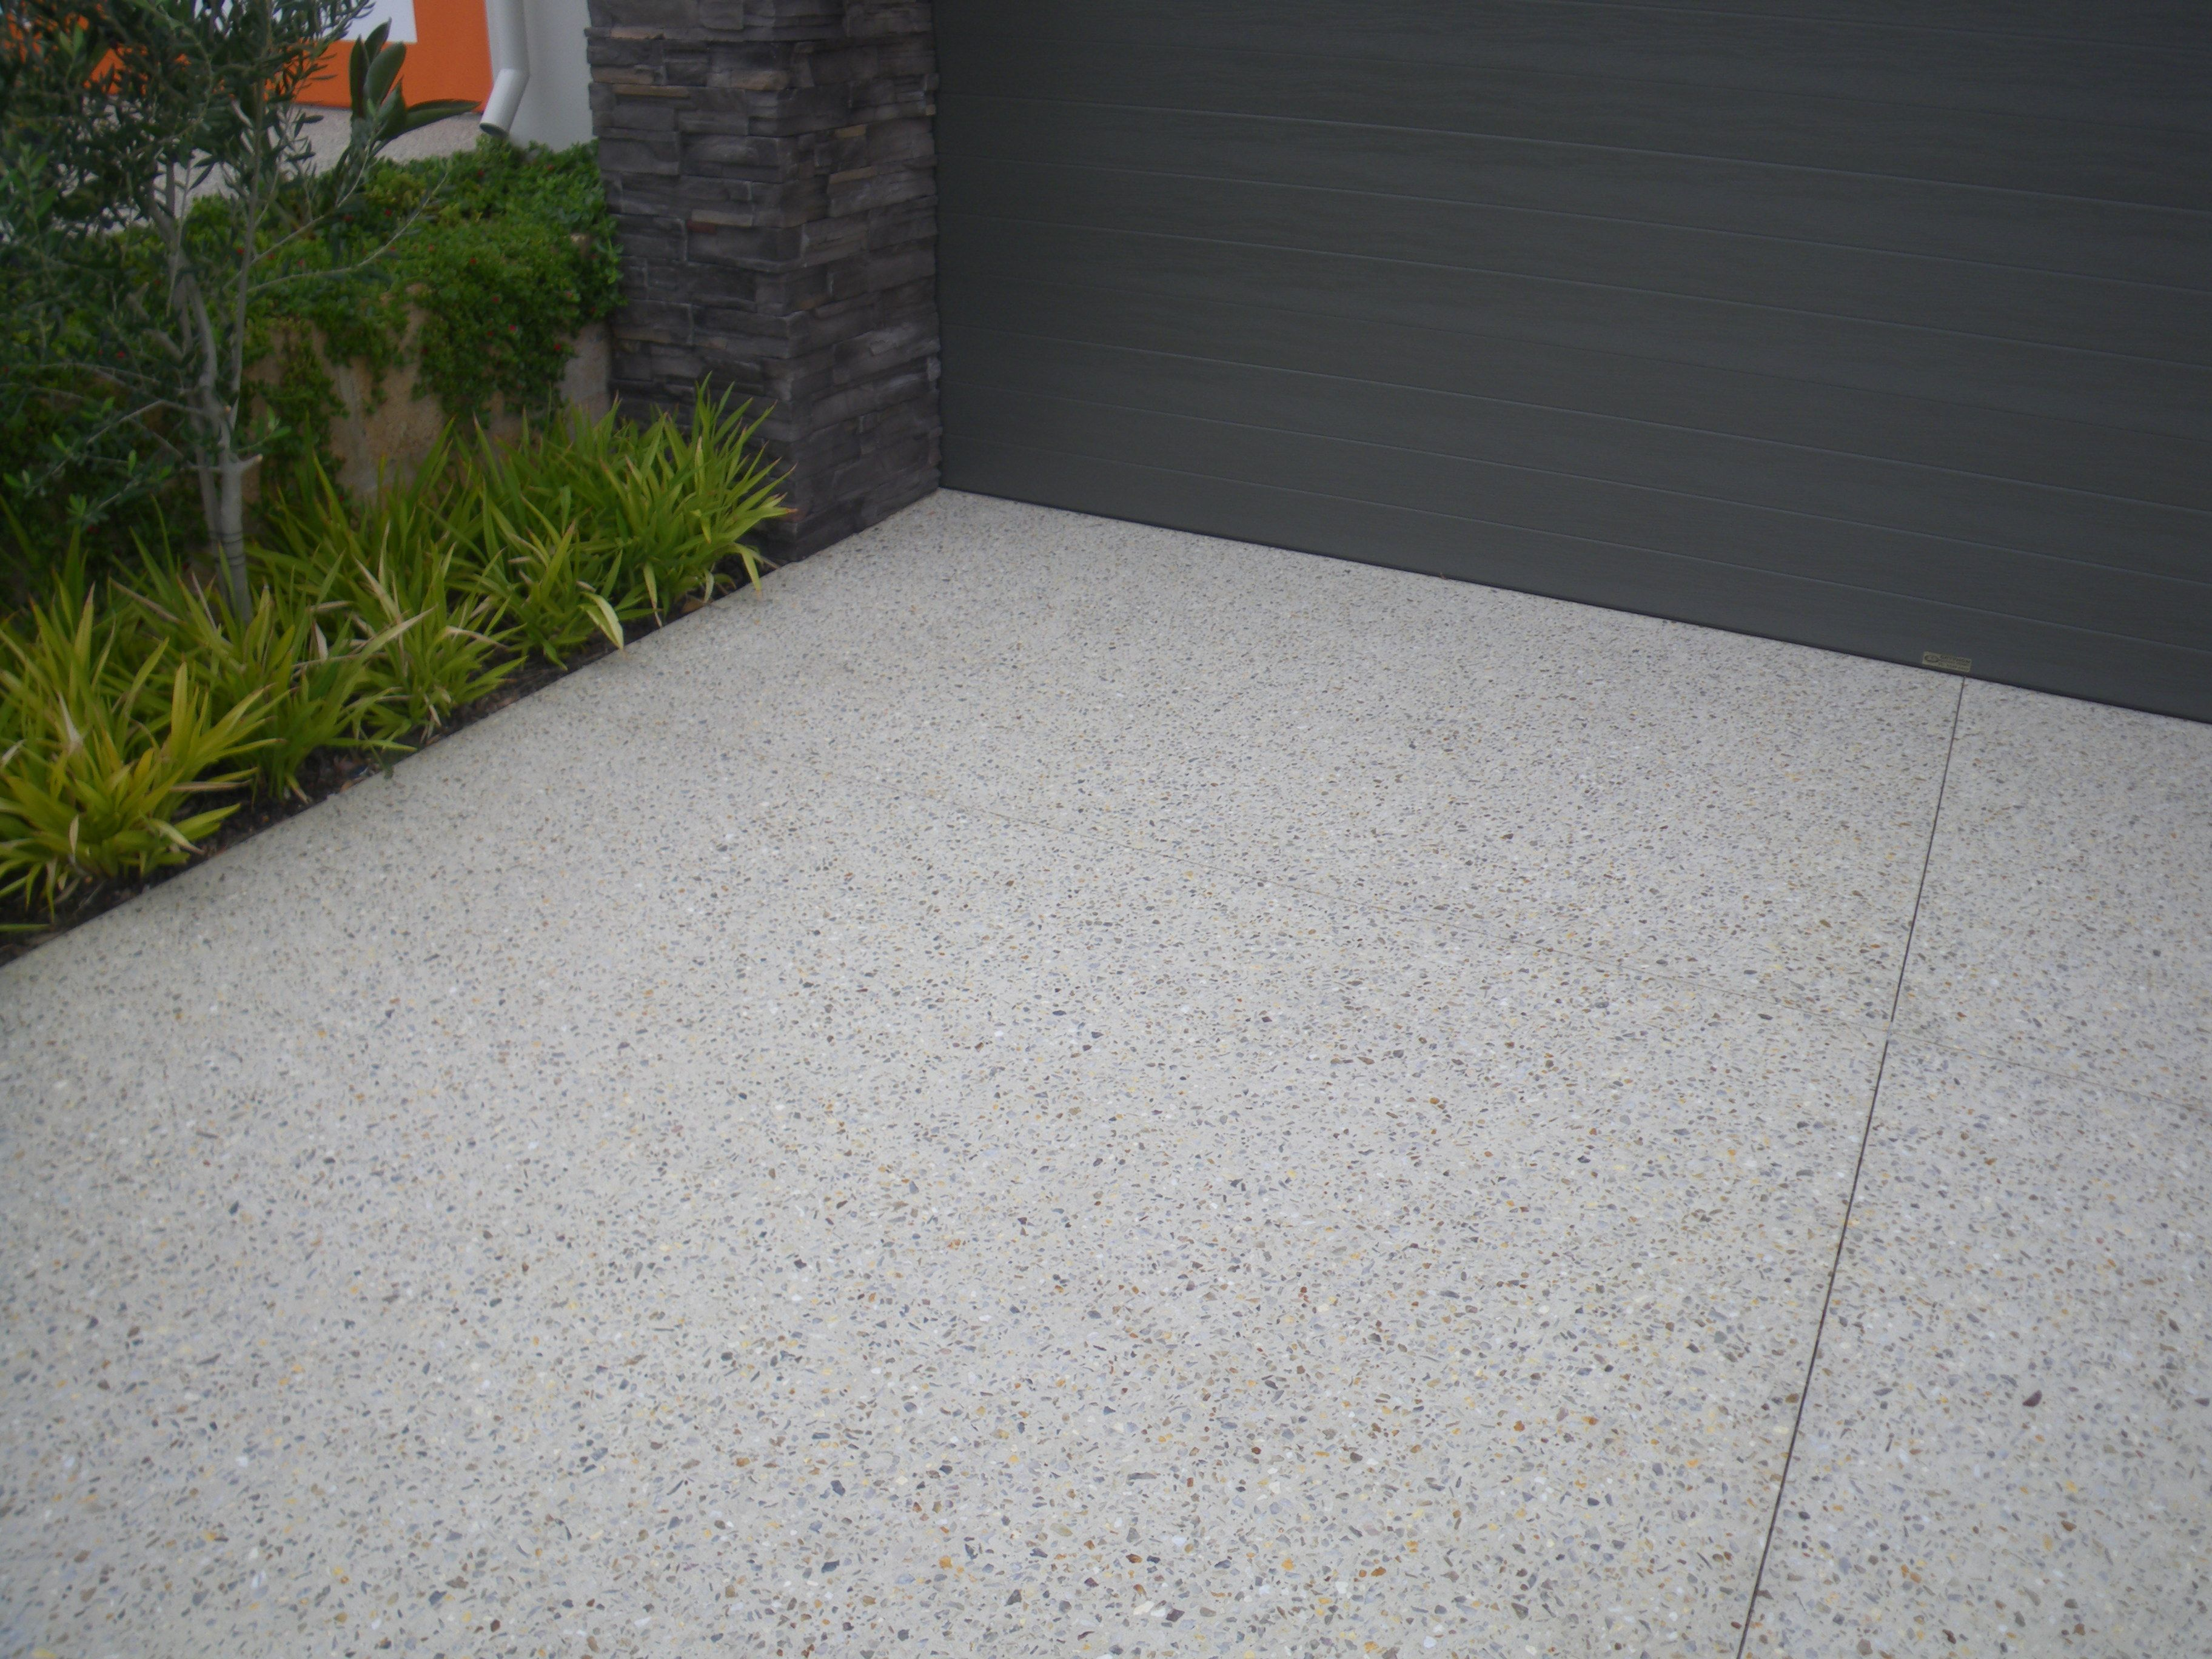 Like This Look For The Driveway Exposed Aggregate Cement Driveway Outdoor Concrete Floors Cement Driveway Aggregate Driveway